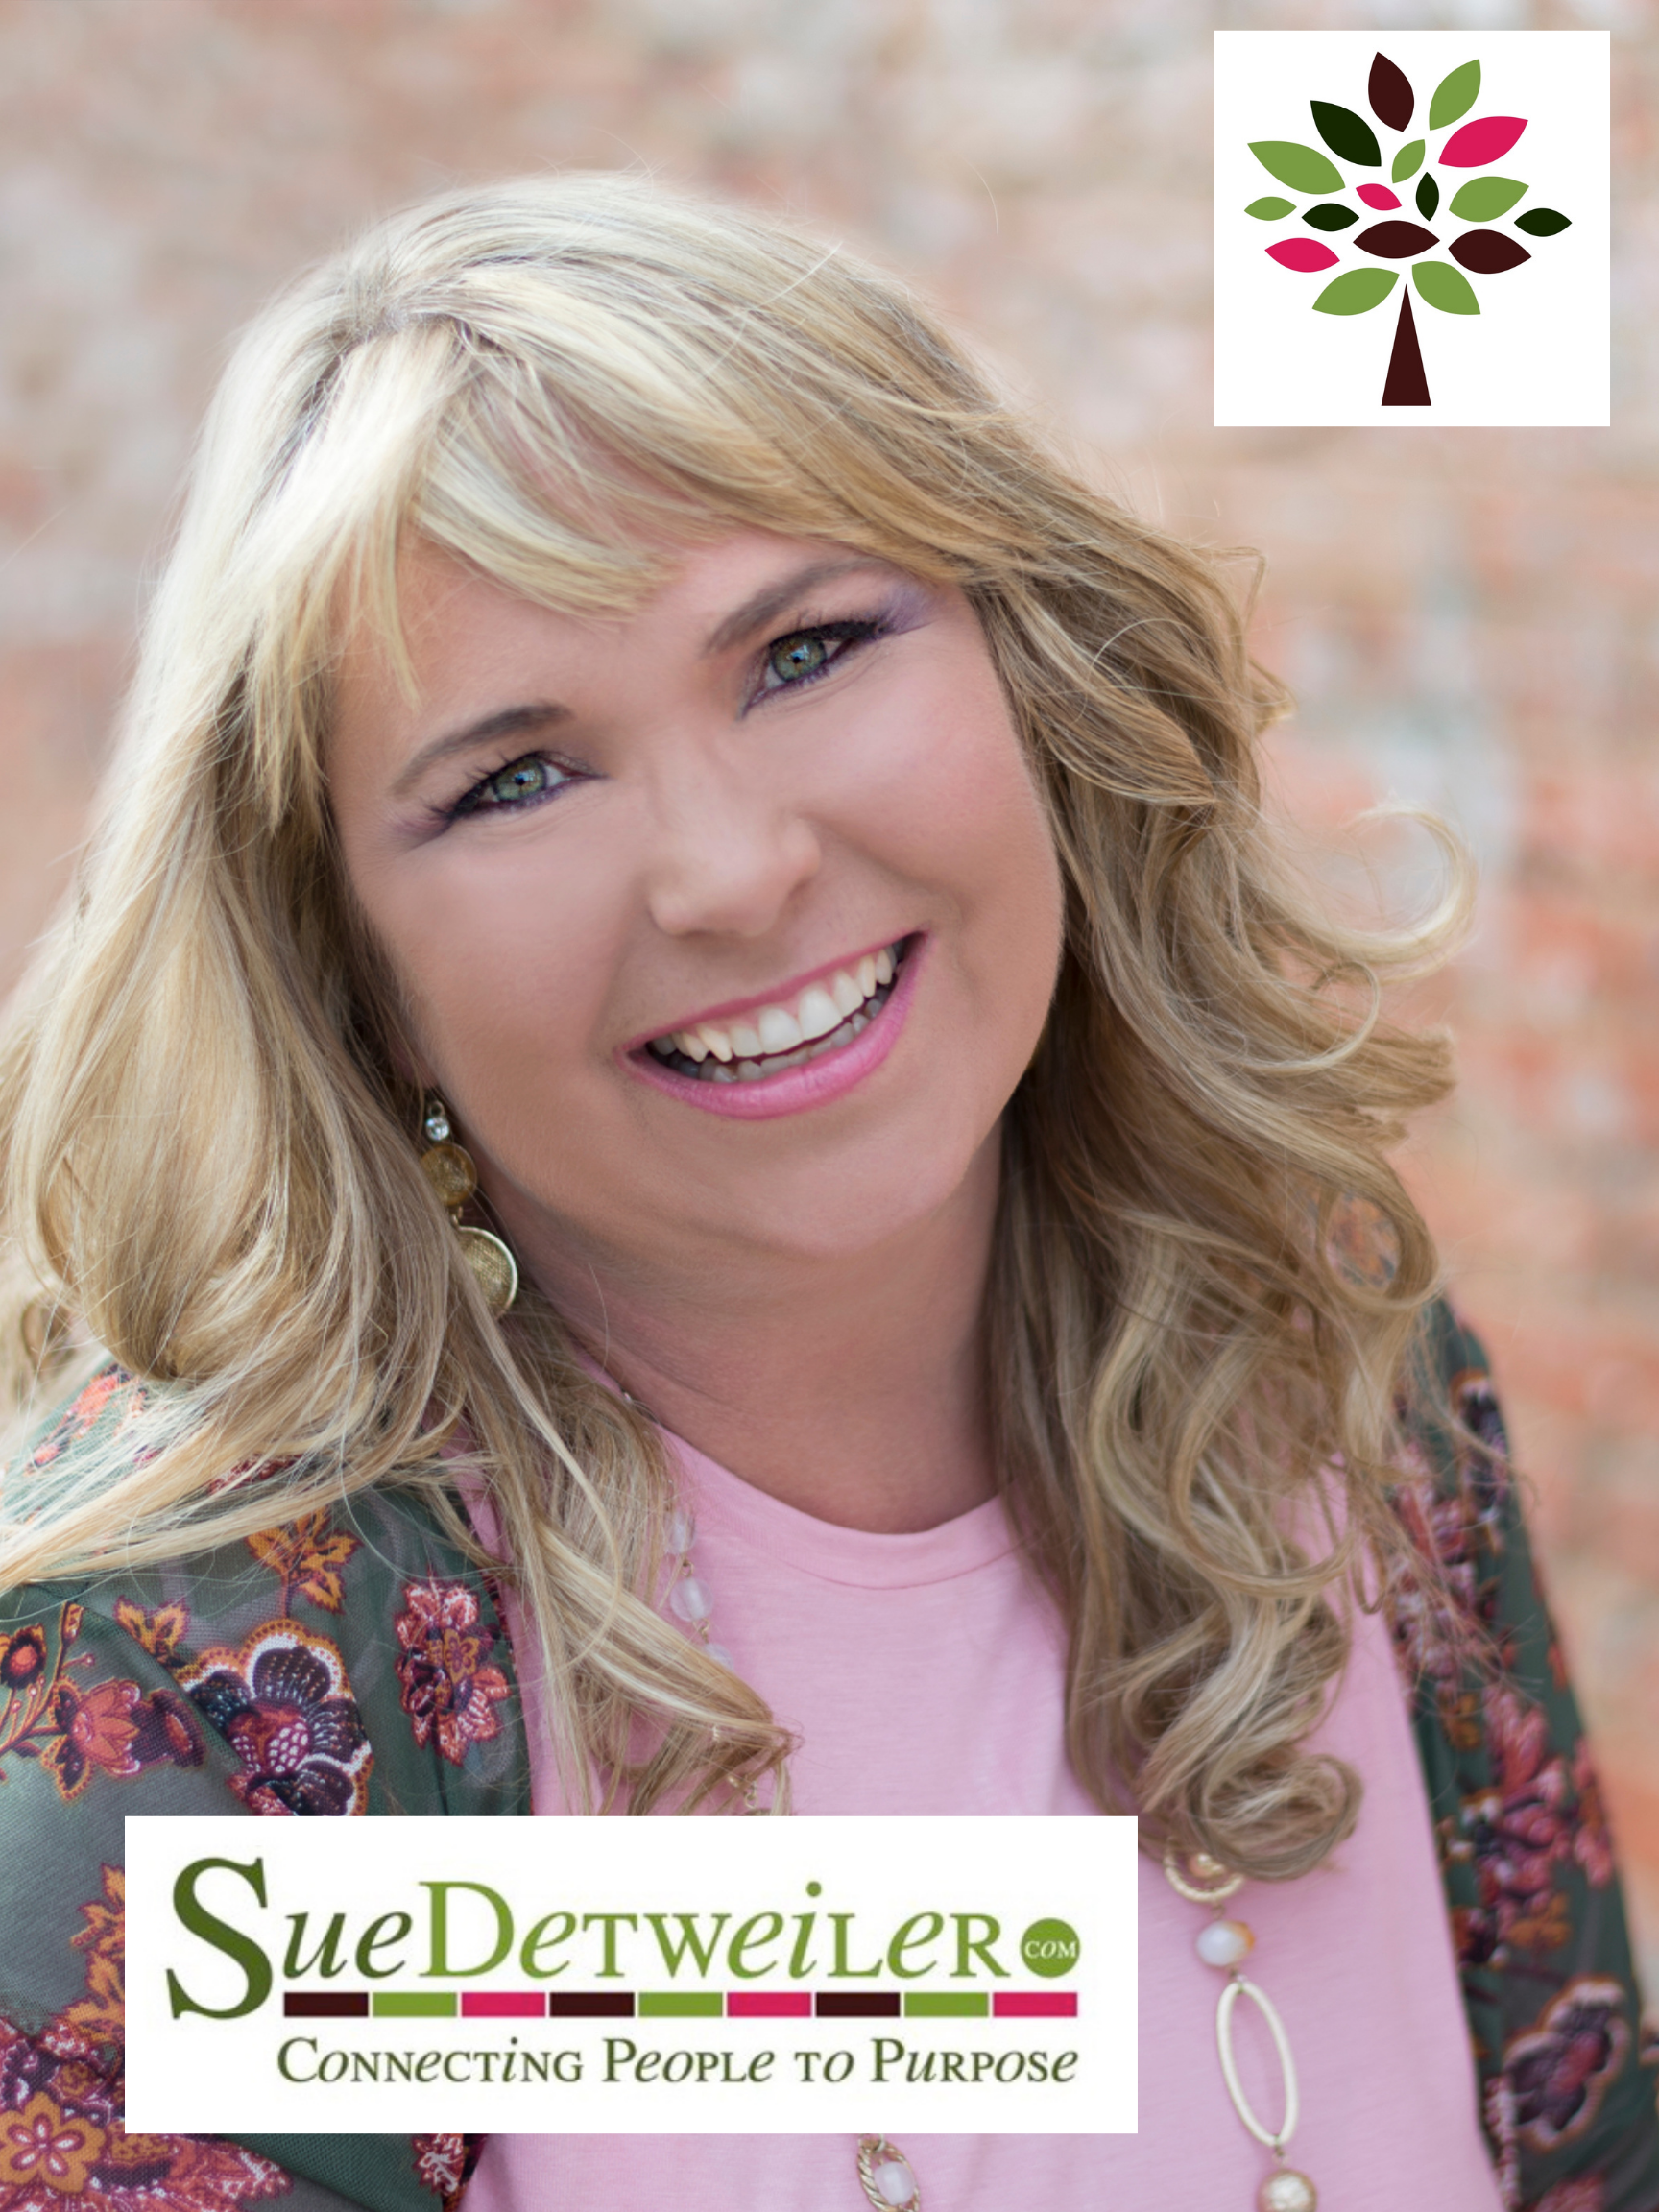 Sue Detweiler faith influencer